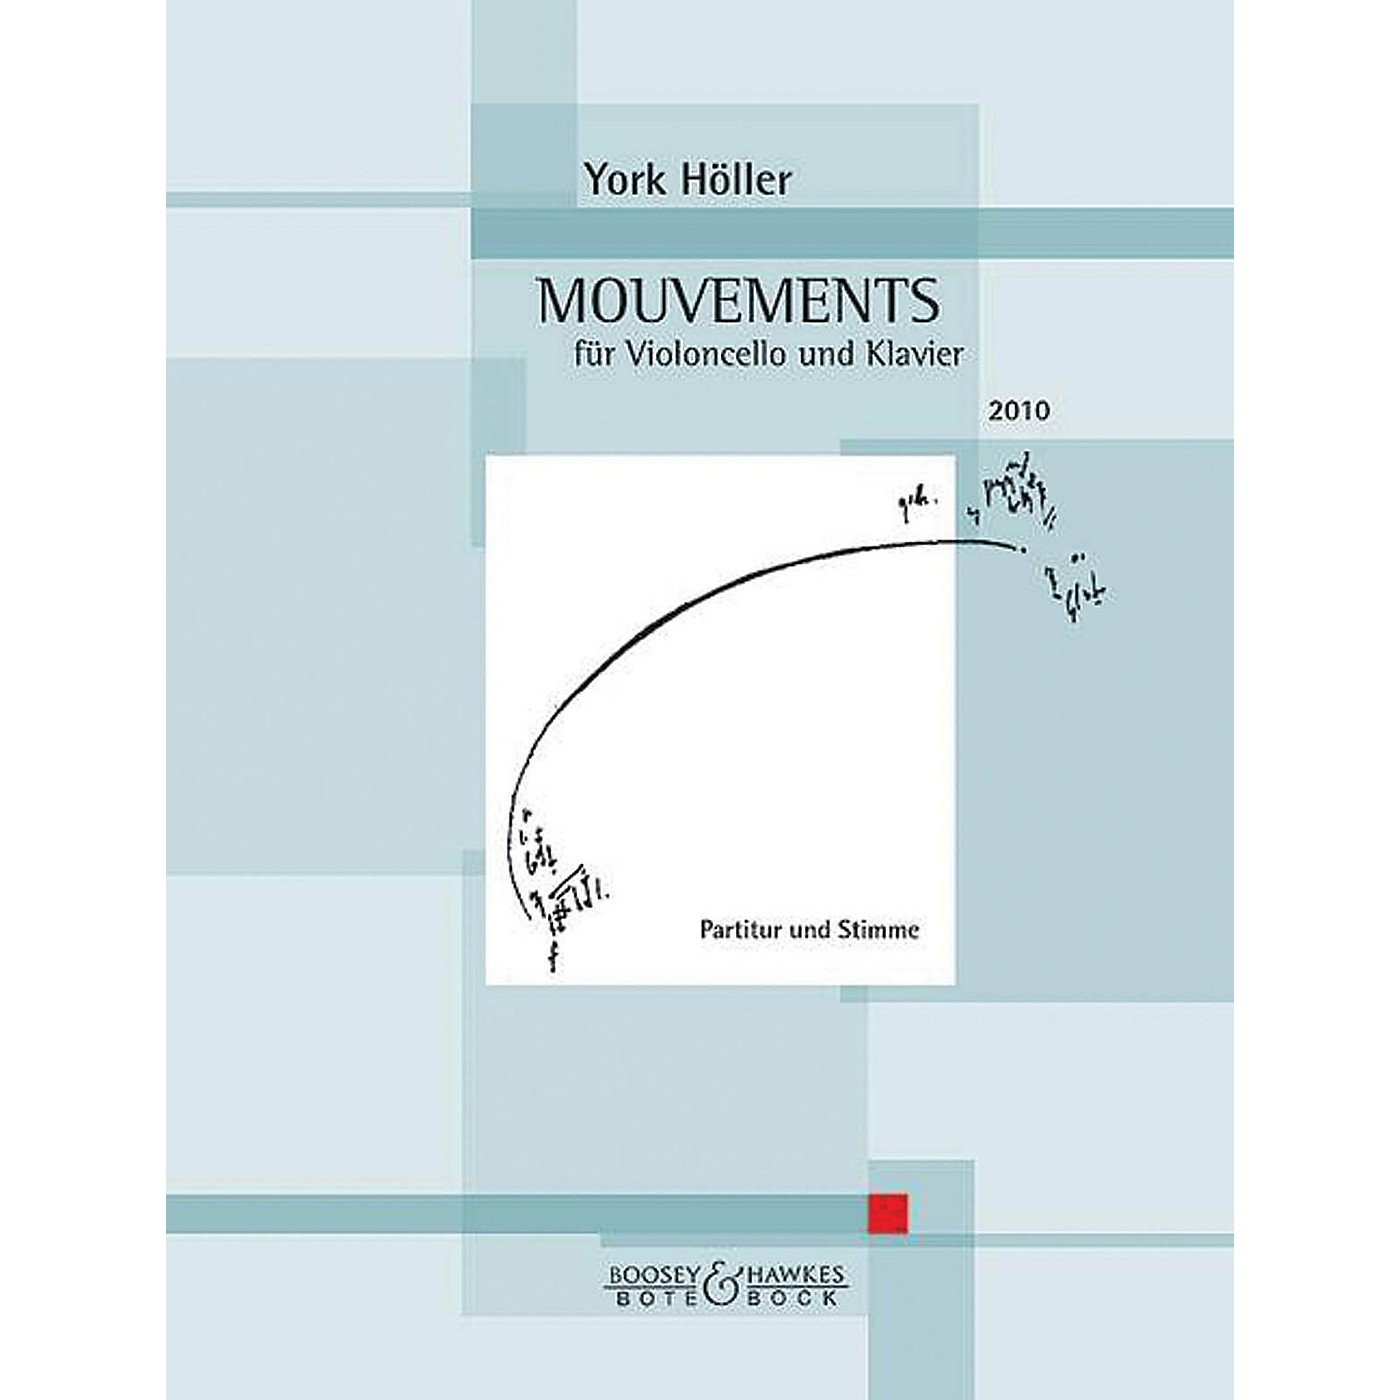 Hal Leonard Mouvement (movement) Cell And Piano Score & Parts Boosey & Hawkes Chamber Music Series Softcover thumbnail